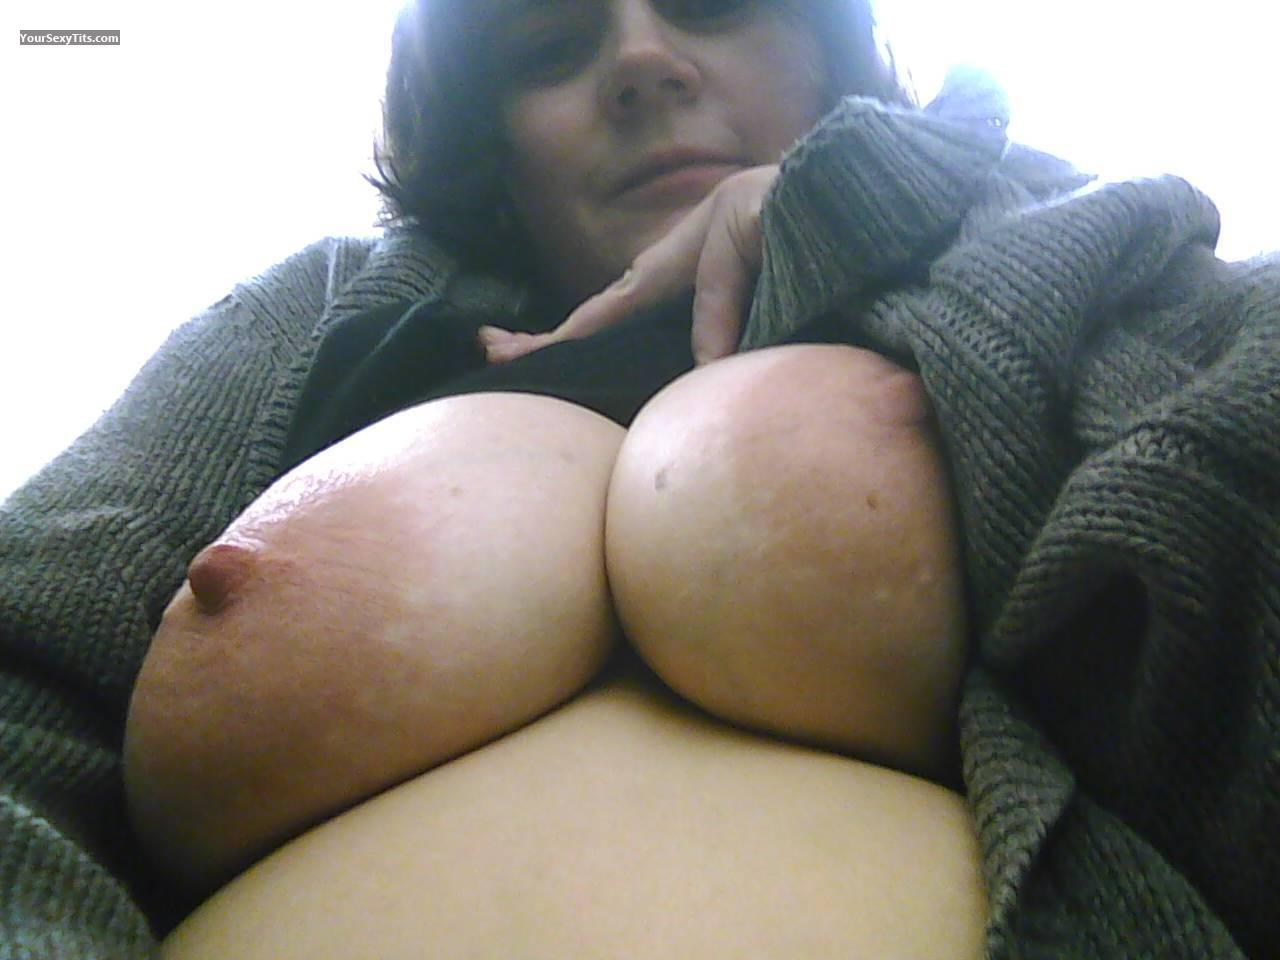 Tit Flash: My Medium Tits (Selfie) - Topless Stargazer from United States